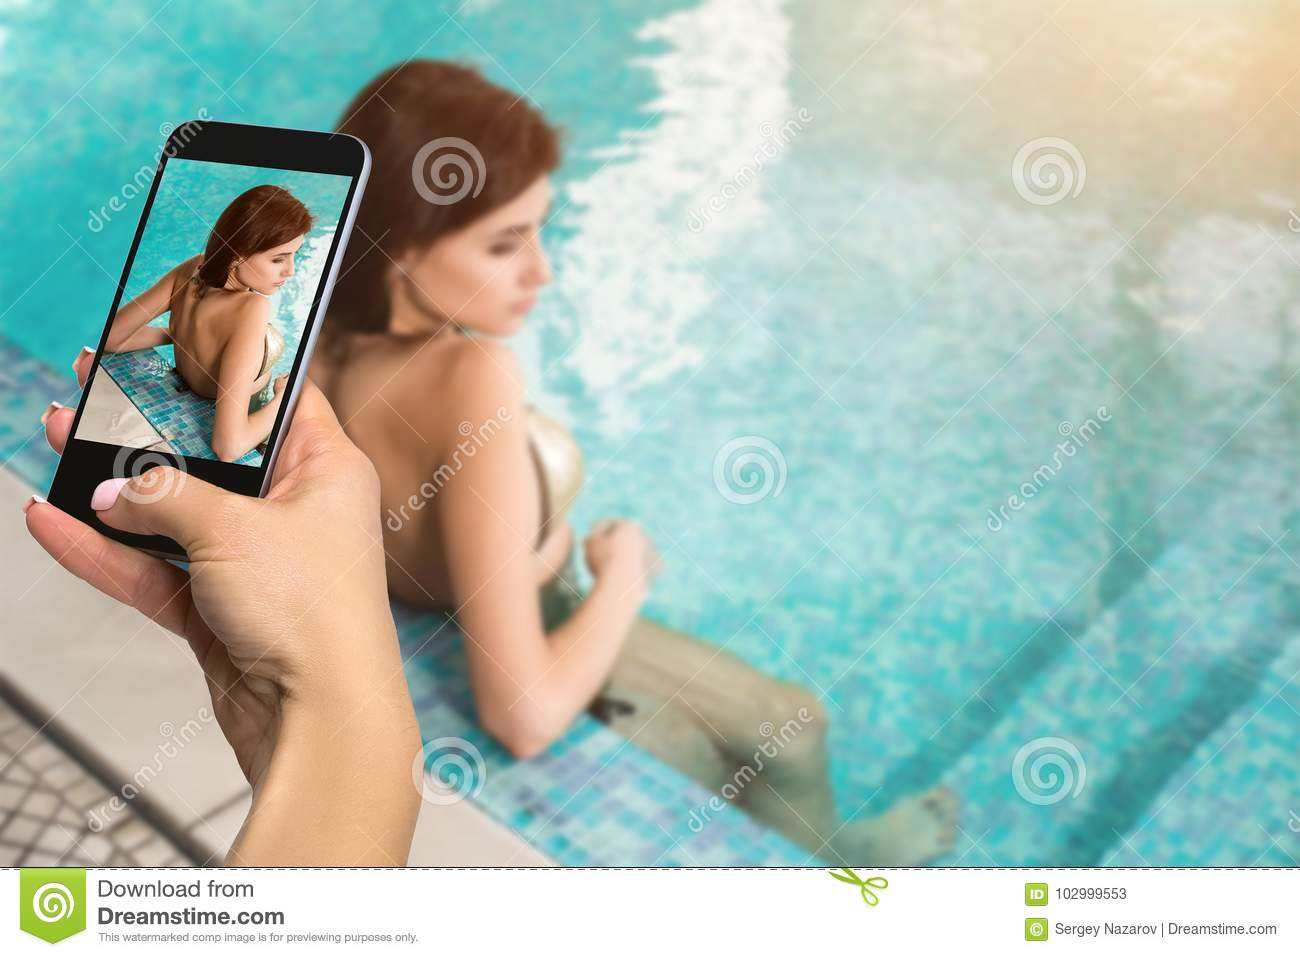 Closely image of female hands holding mobile phone with photo camera mode on the screen. Cropped image of beautiful long